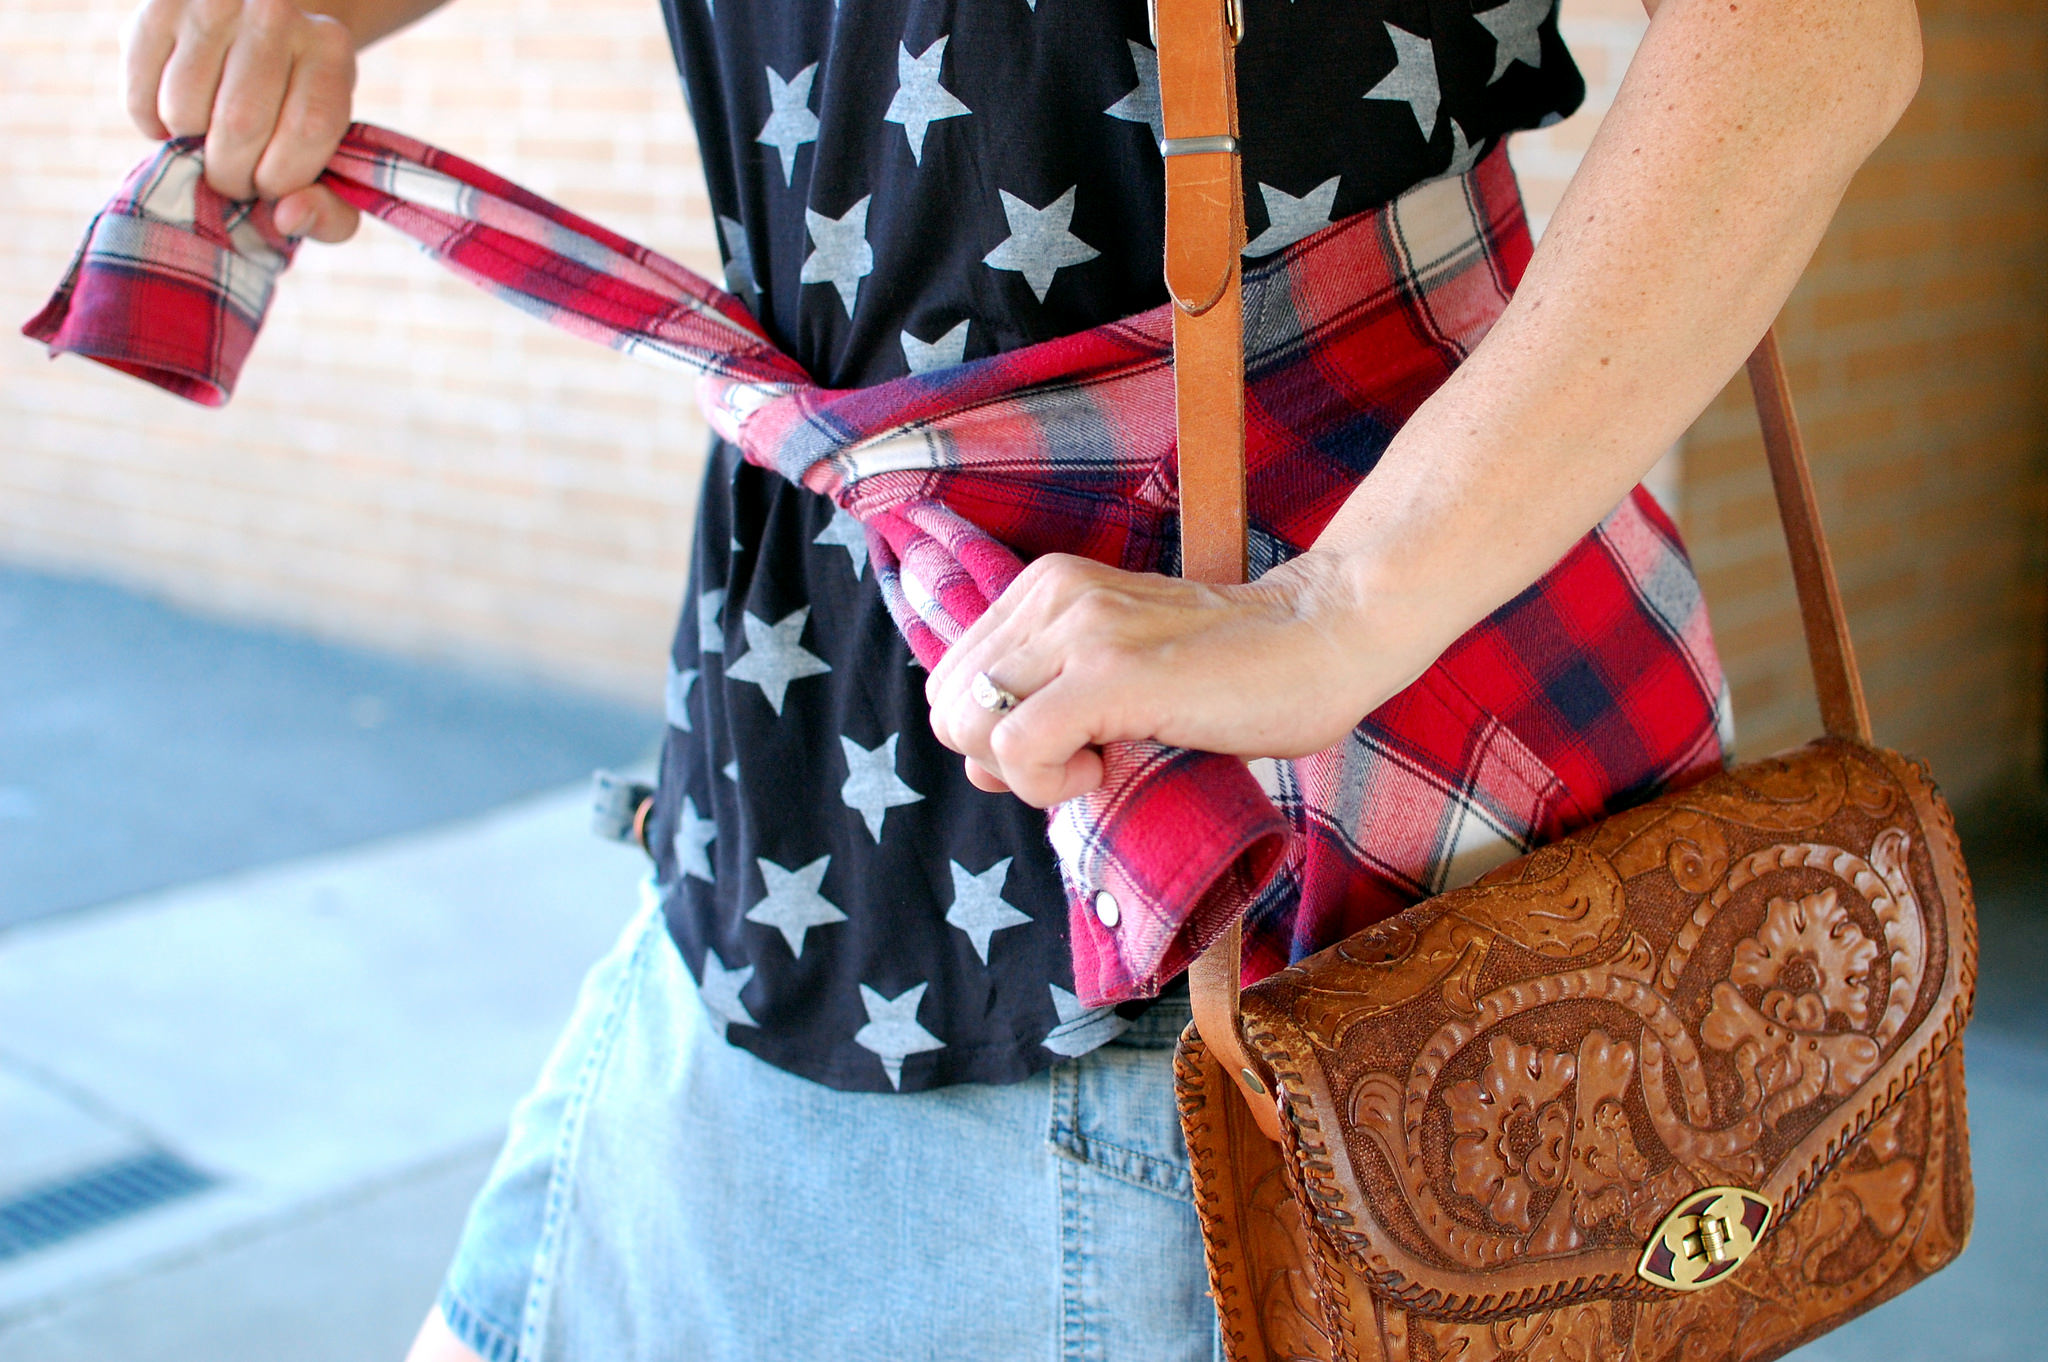 stars plaid 4th of july holiday patriotic navy red daily outfit blog ootd whatiwore2day